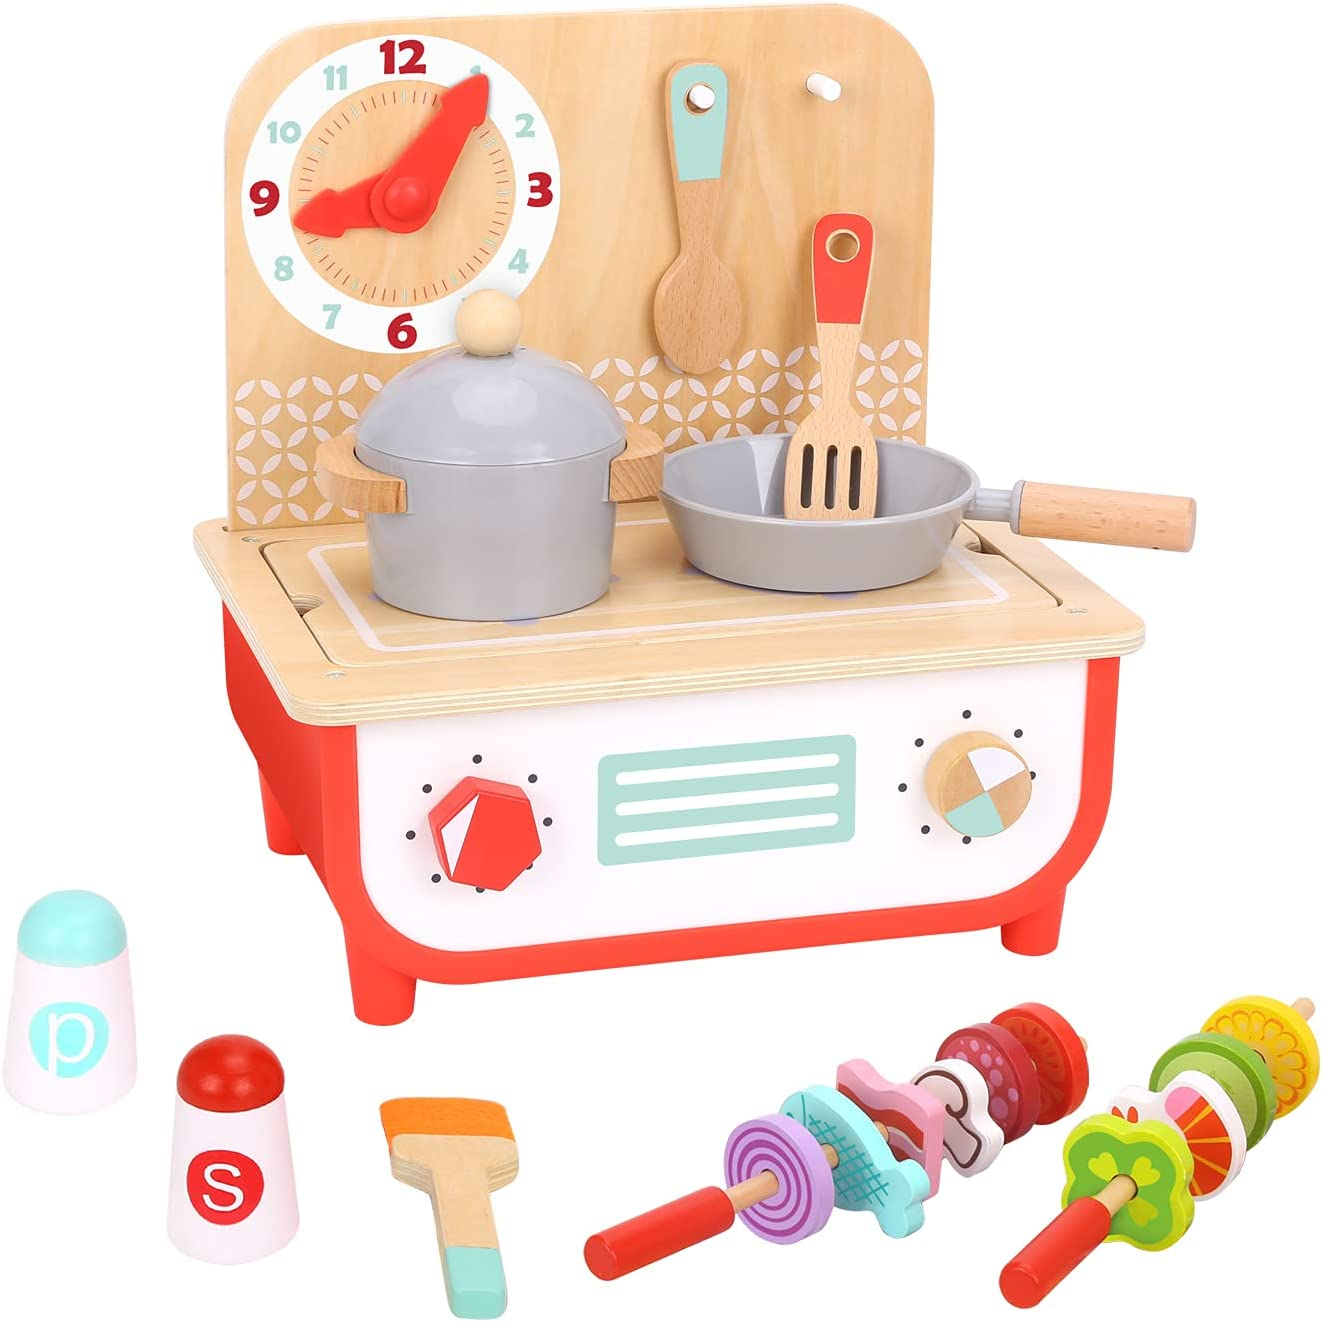 TOOKYLAND Kids Kitchen Playset Pretend Barbecue Grill Toy, Multifunction Wooden Play Kitchen for Toddlers, Kids Play Food Set with Food Molds for Boys and Girls Age 3+